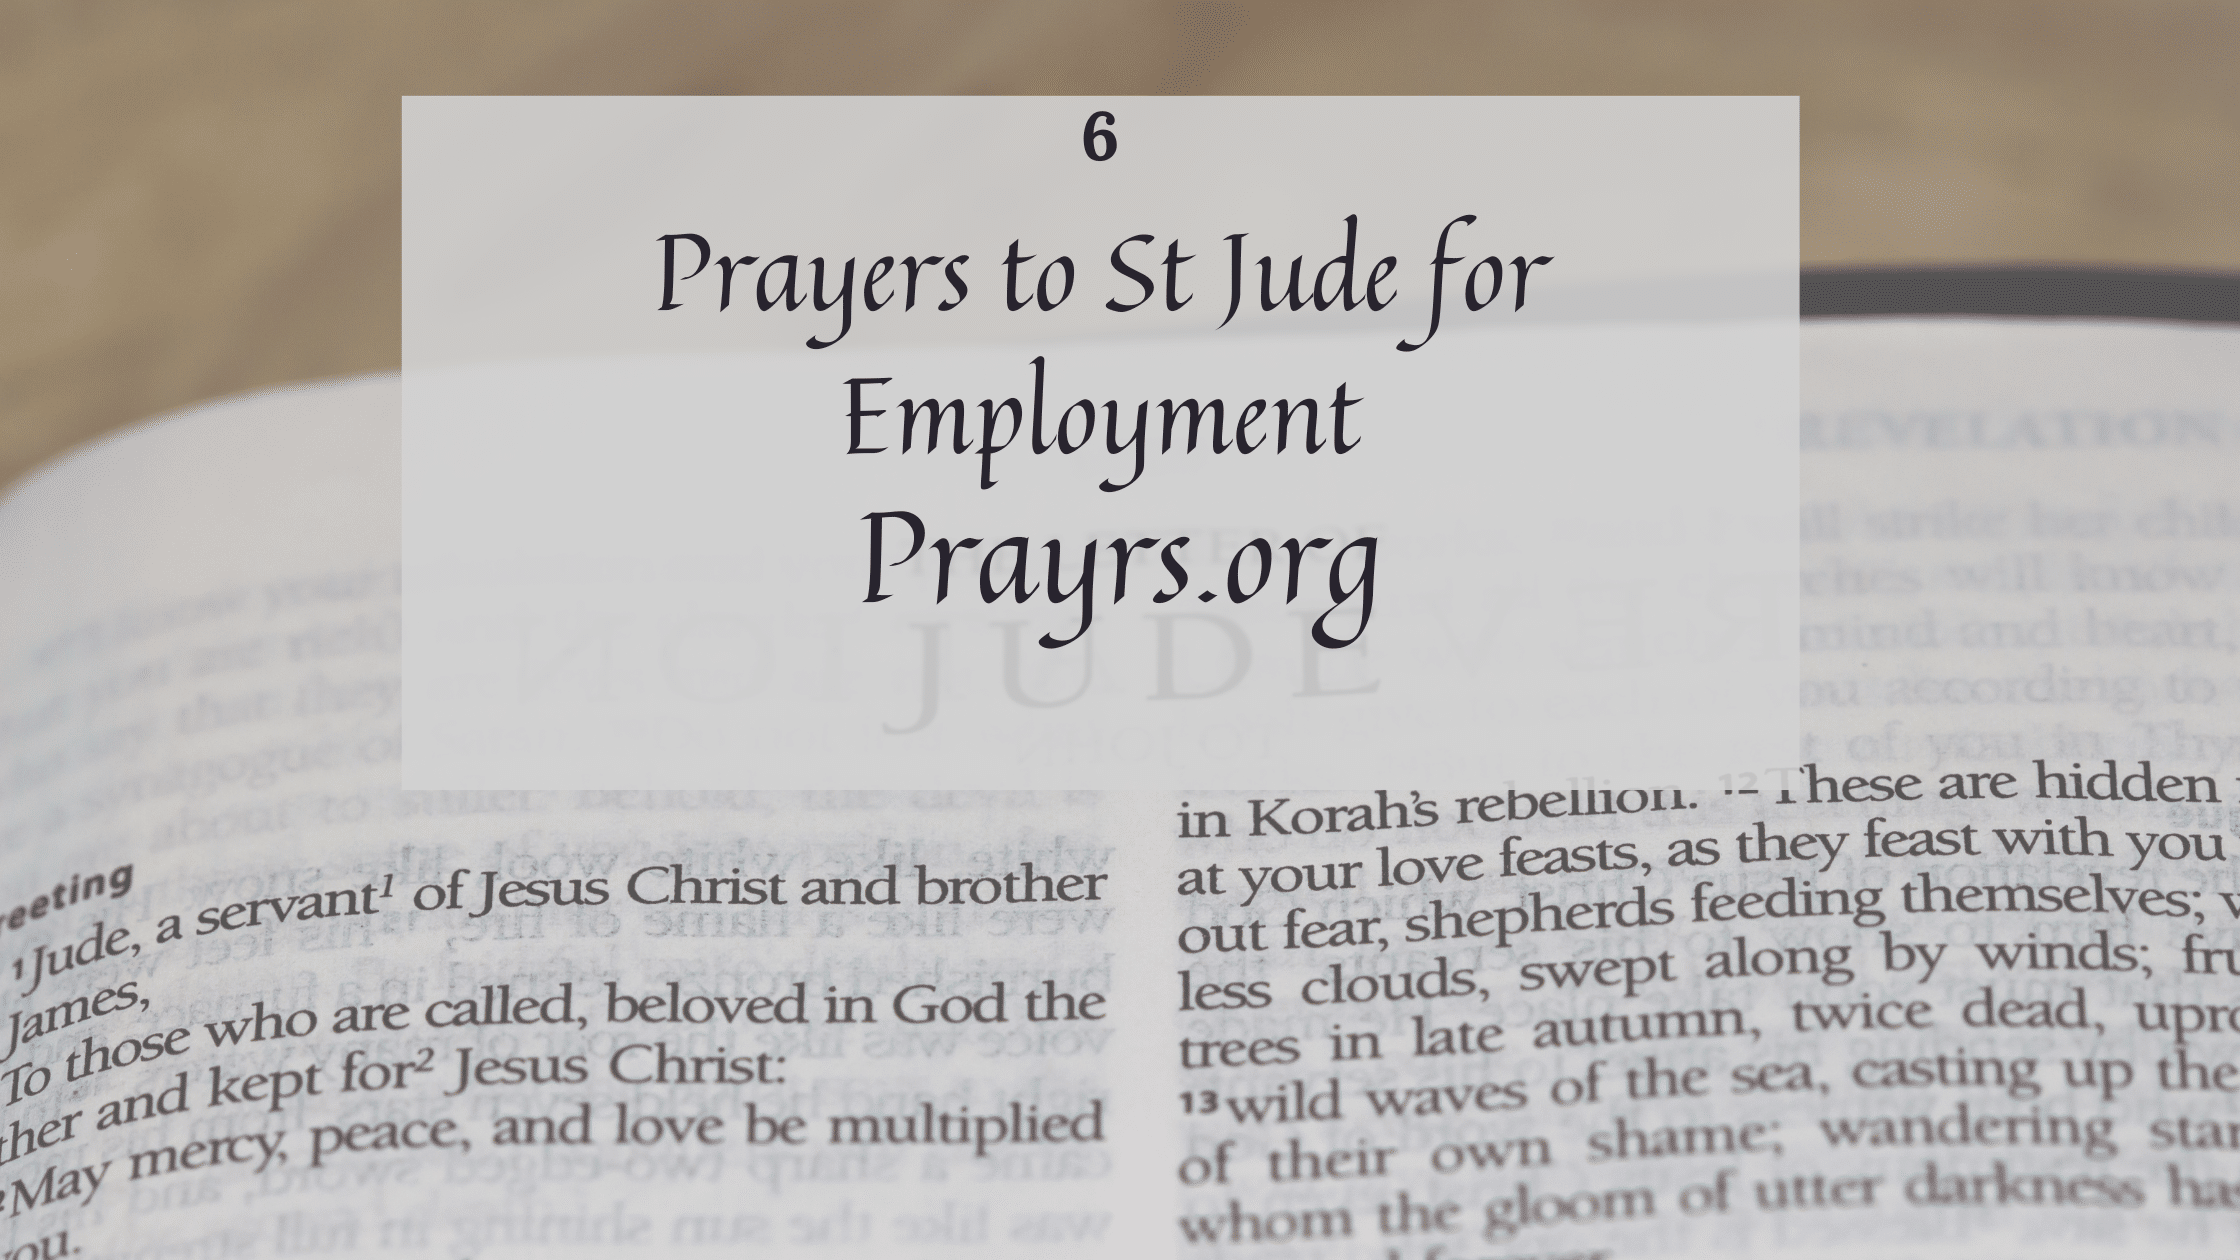 Prayers to St Jude for Employment